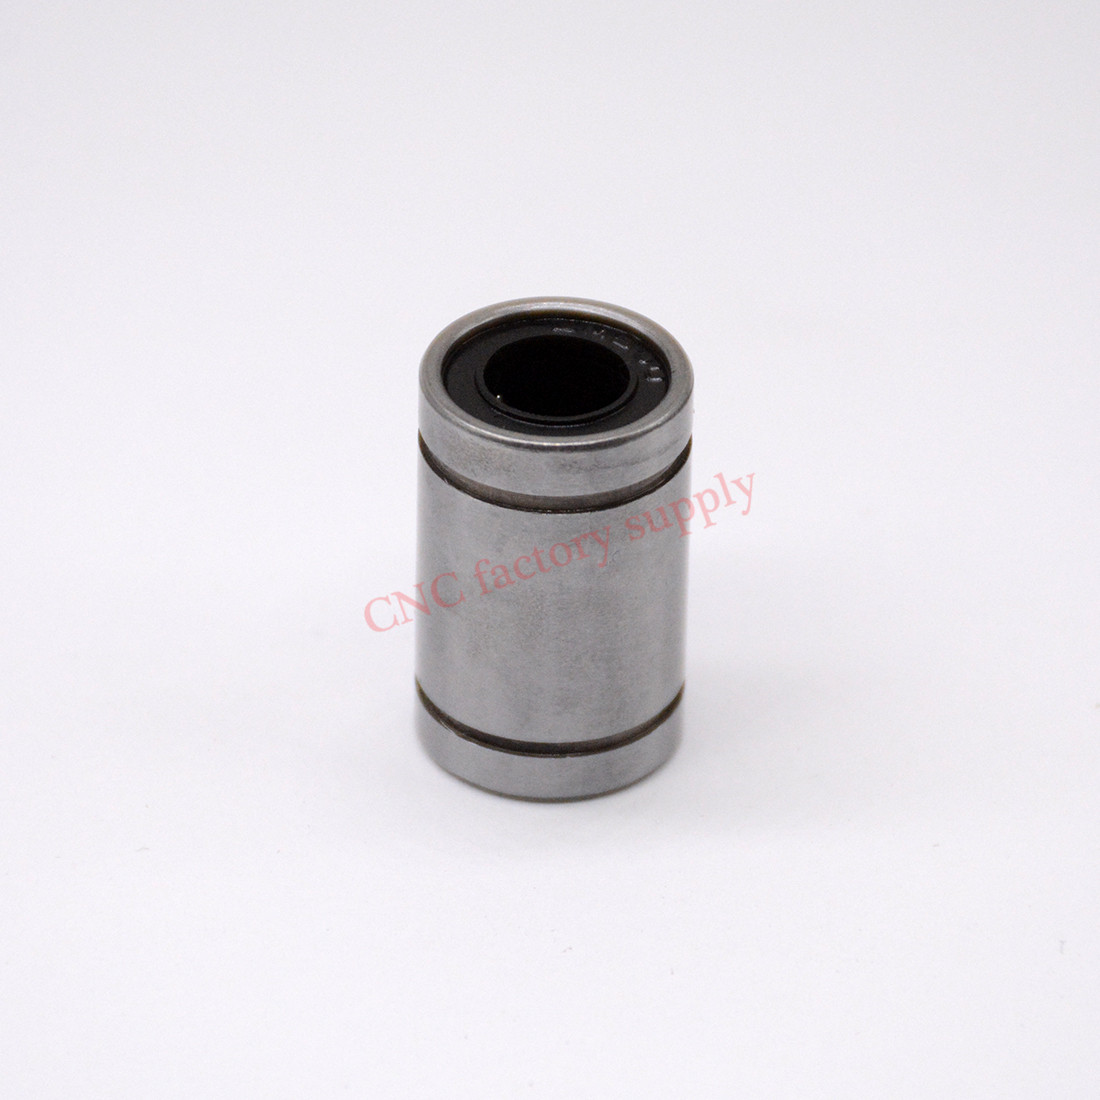 Free shipping LM8UU Linear Bushing 8mm CNC Linear Bearings 10pcs/lot free shipping lm60uu 60mm linear bushing cnc linear bearings